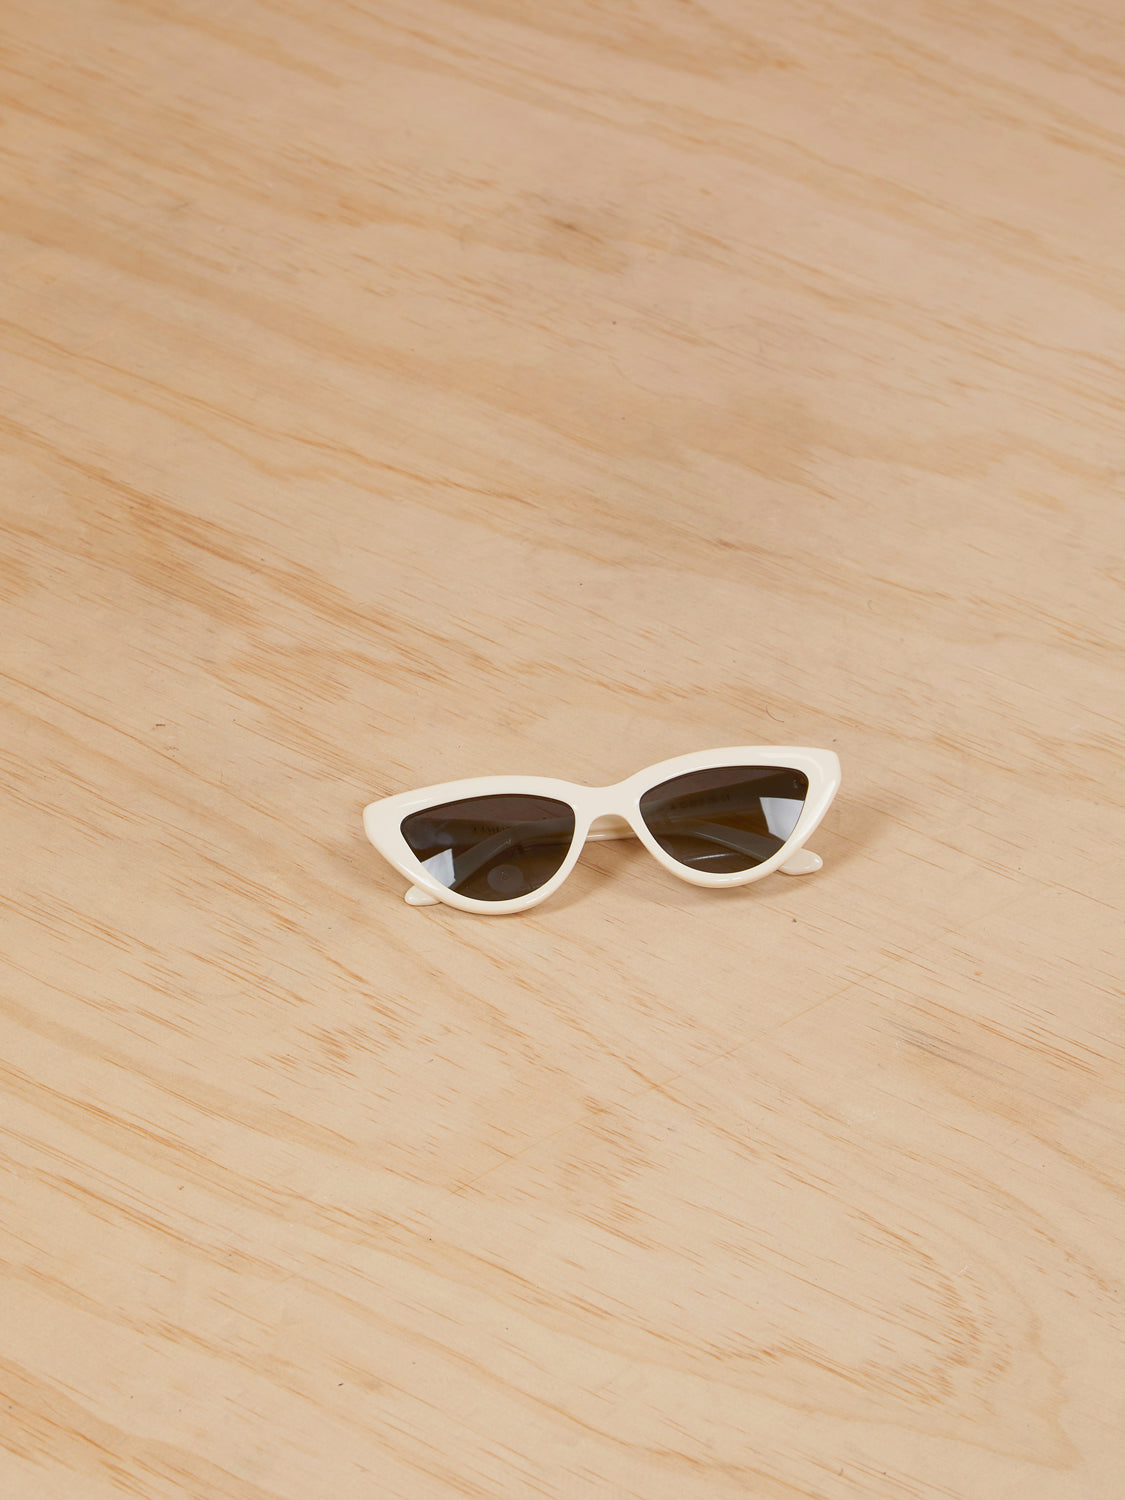 Anine Bing Sunglasses